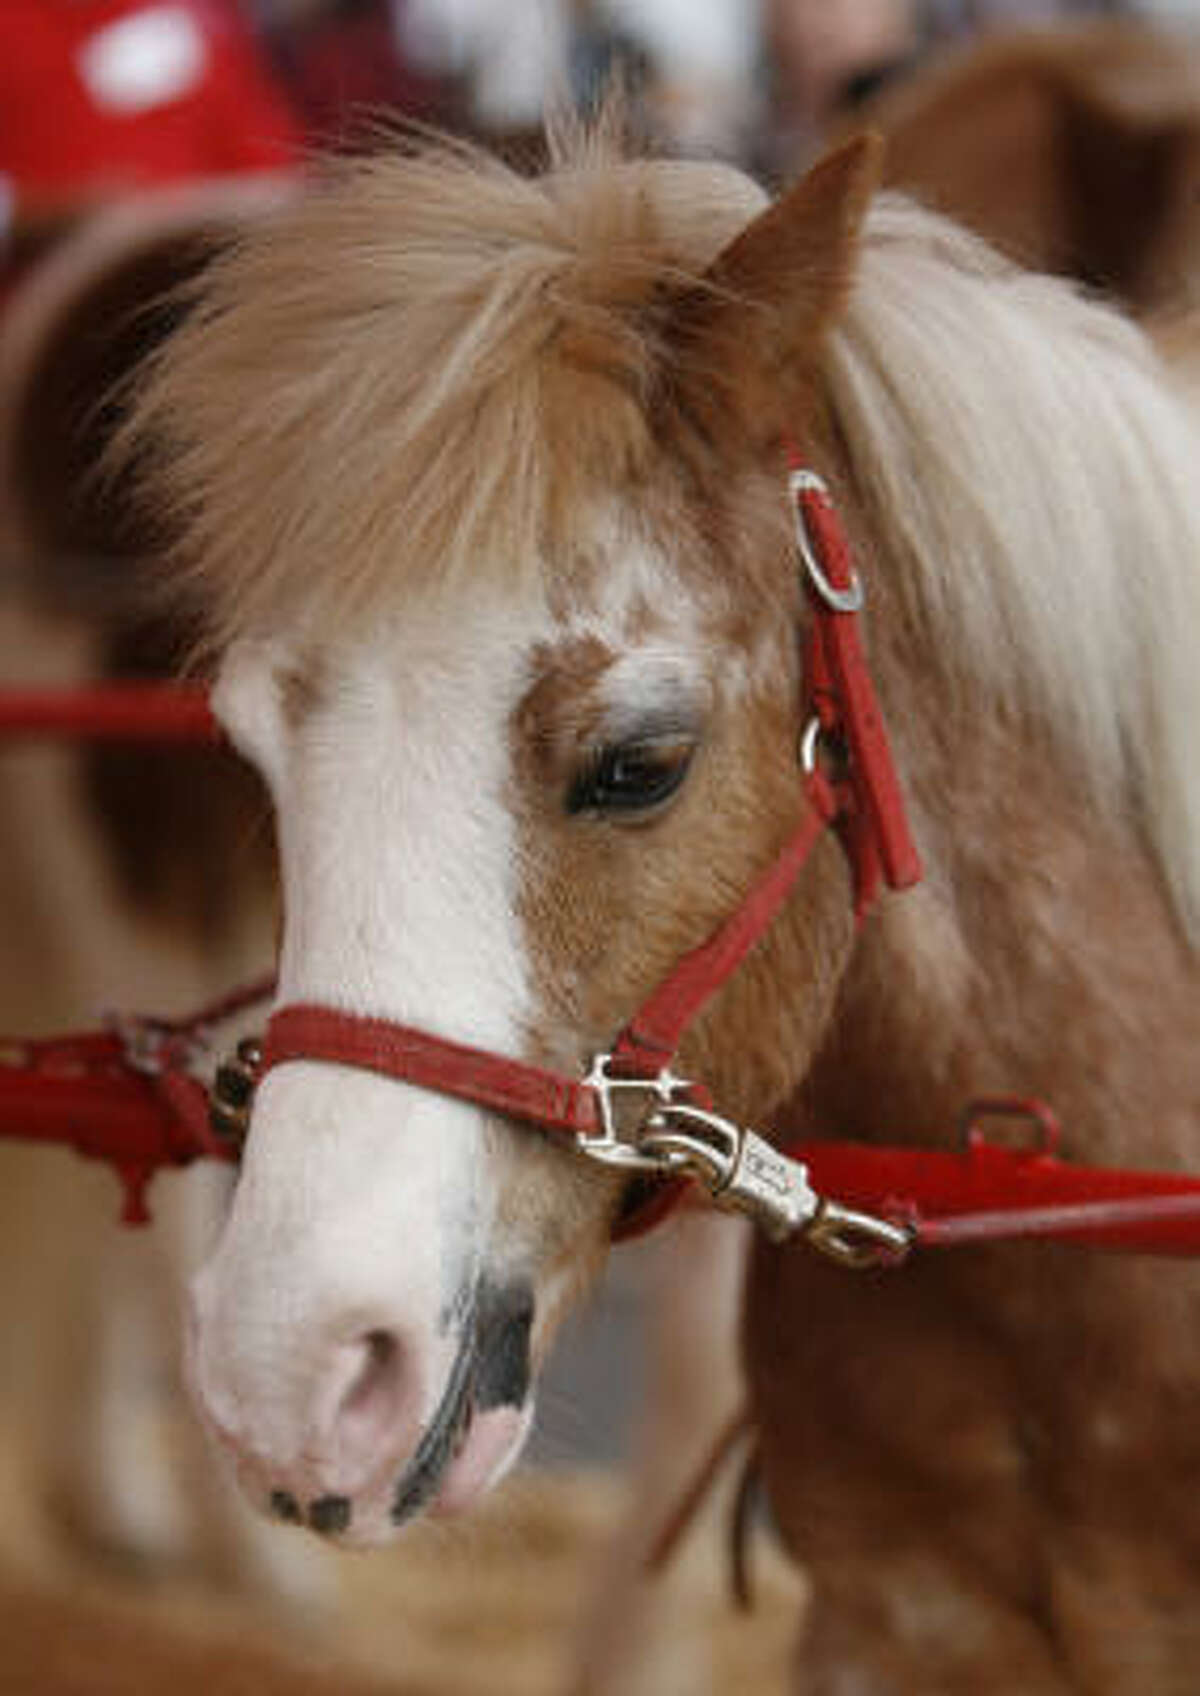 Cowboy the pony: The friendly Welsh pony is a kid favorite because of his name, said Louis Alcarzar, Great American Pony Ride manager, but Cowboy is also one of the strongest ponies hitched to the circle ride. Another fave is Twinkie, a blond pony that sometimes will smile for the camera, Alcarzar said. Details: There are pony rides in AGventure and Kids Country. Cost: $7.